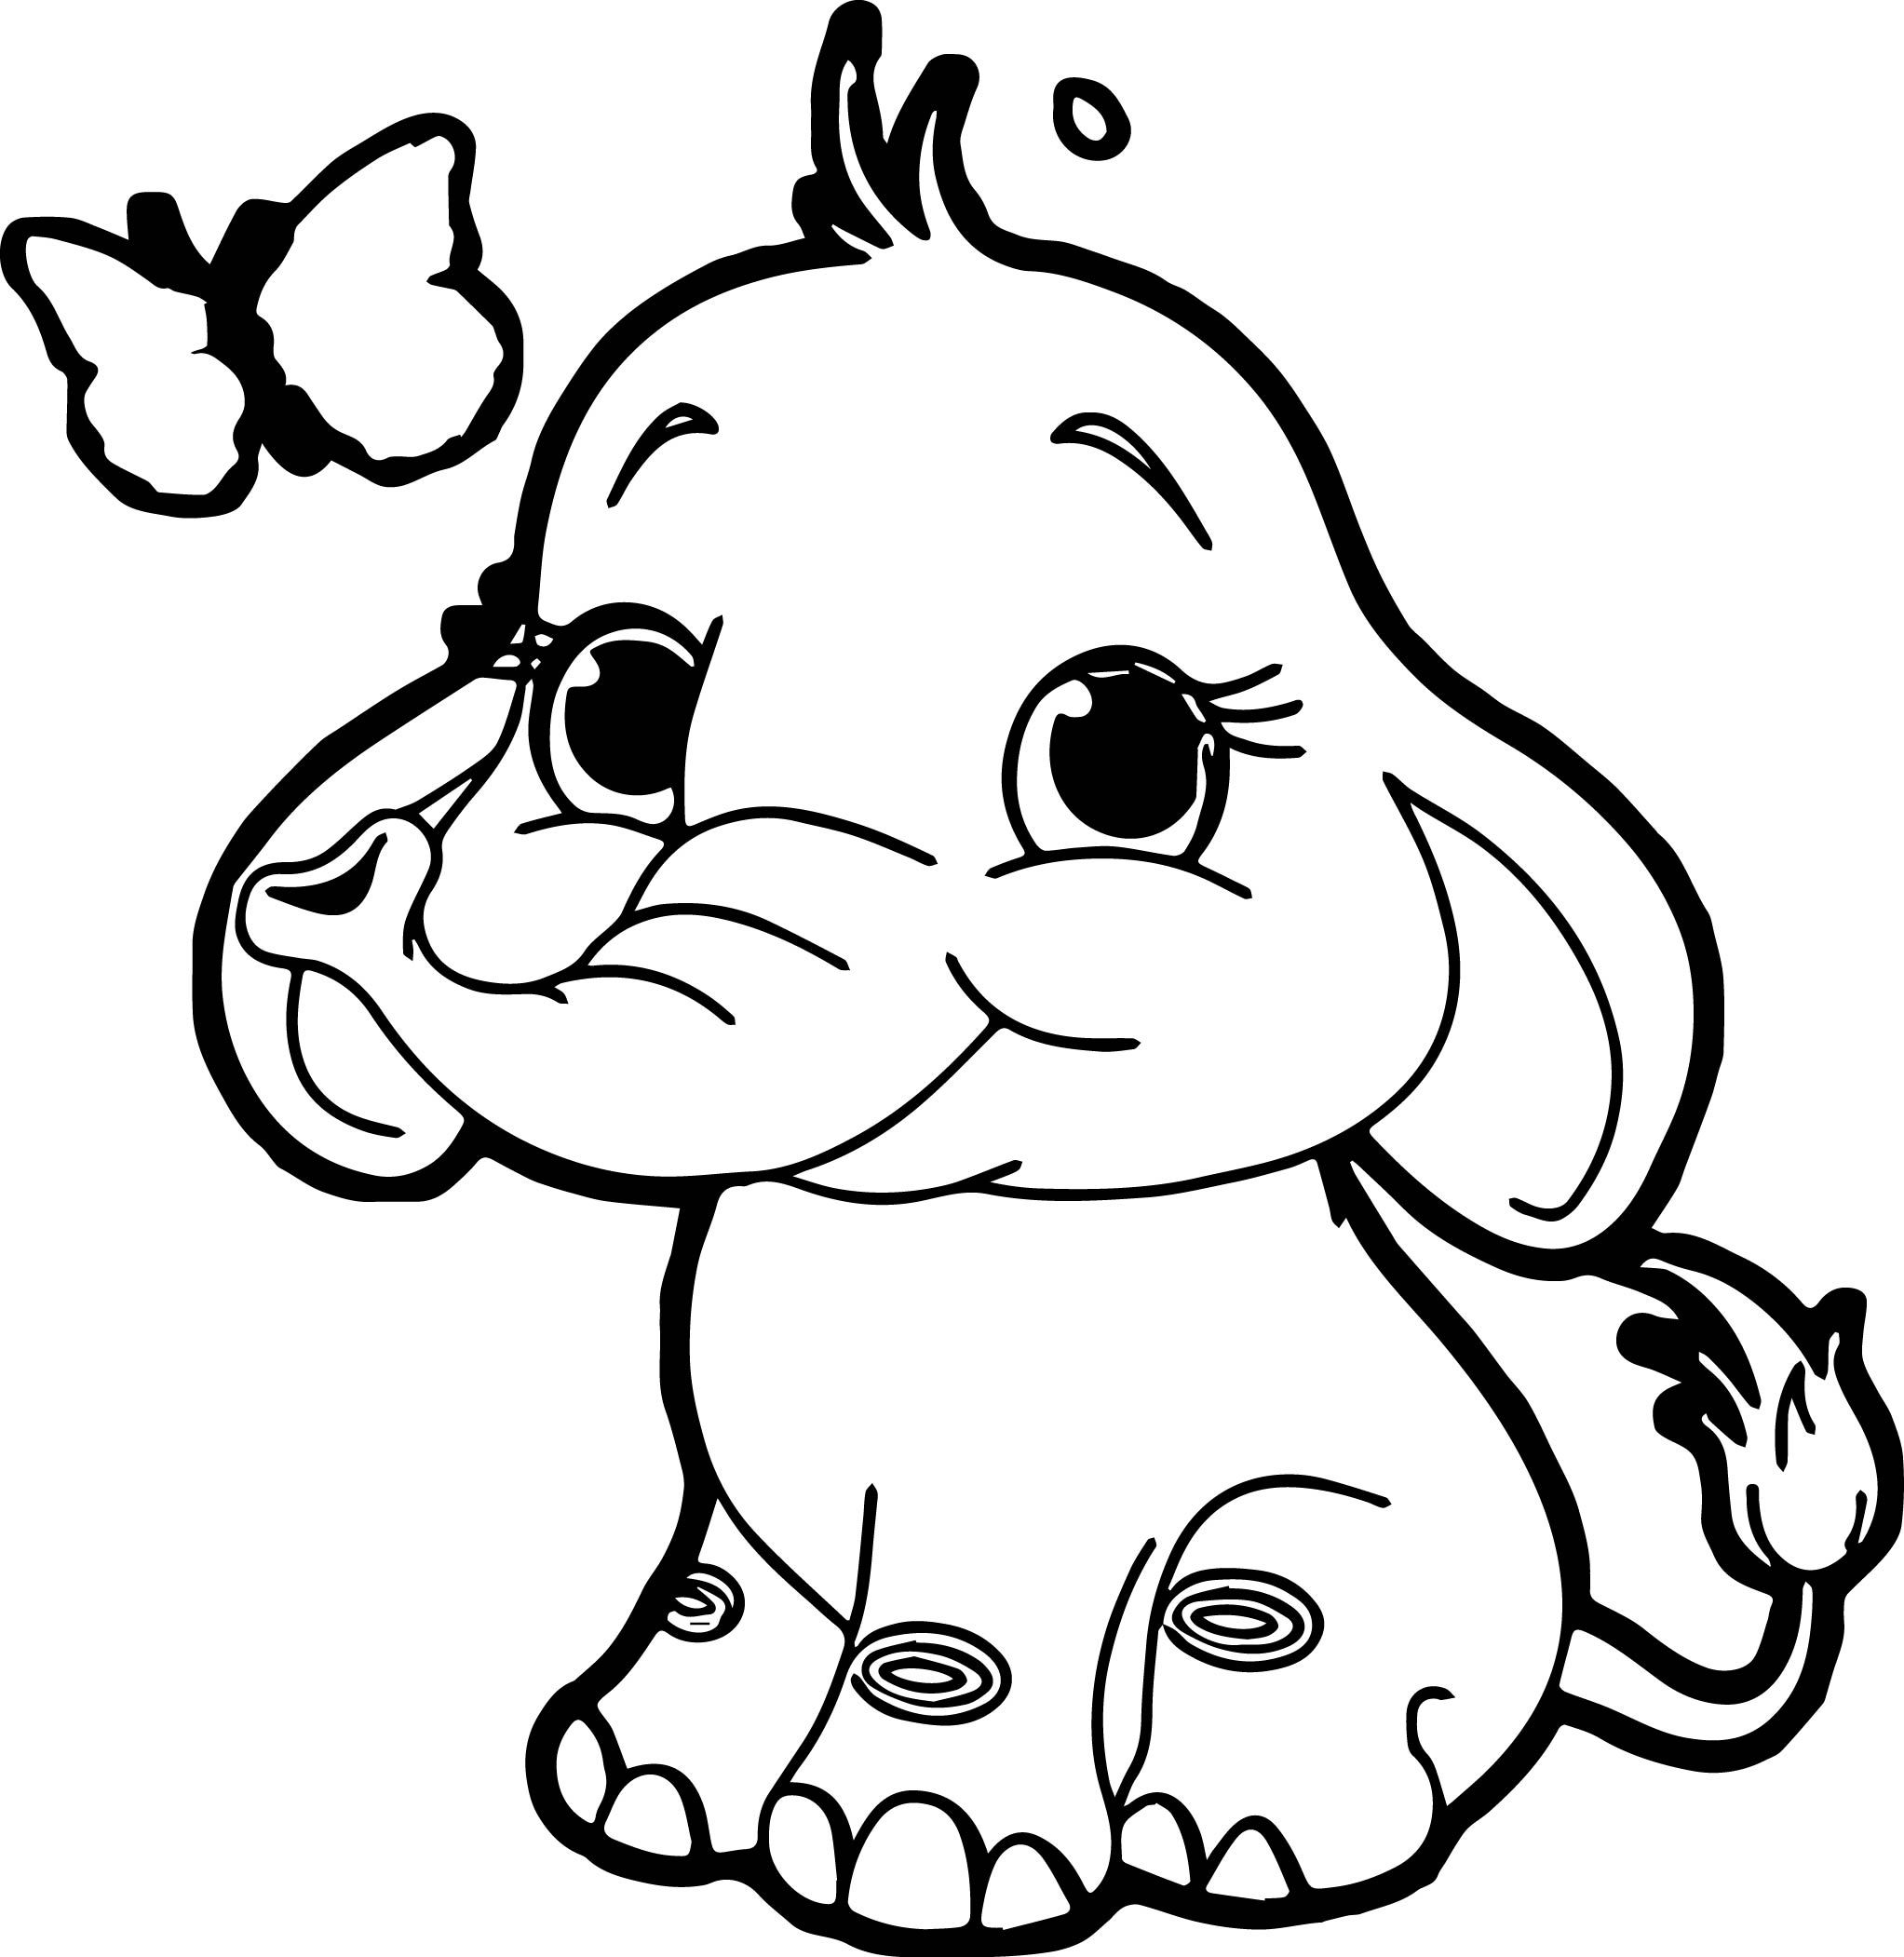 elephant outline coloring page elephant template elephant coloring page elephant outline page coloring outline elephant